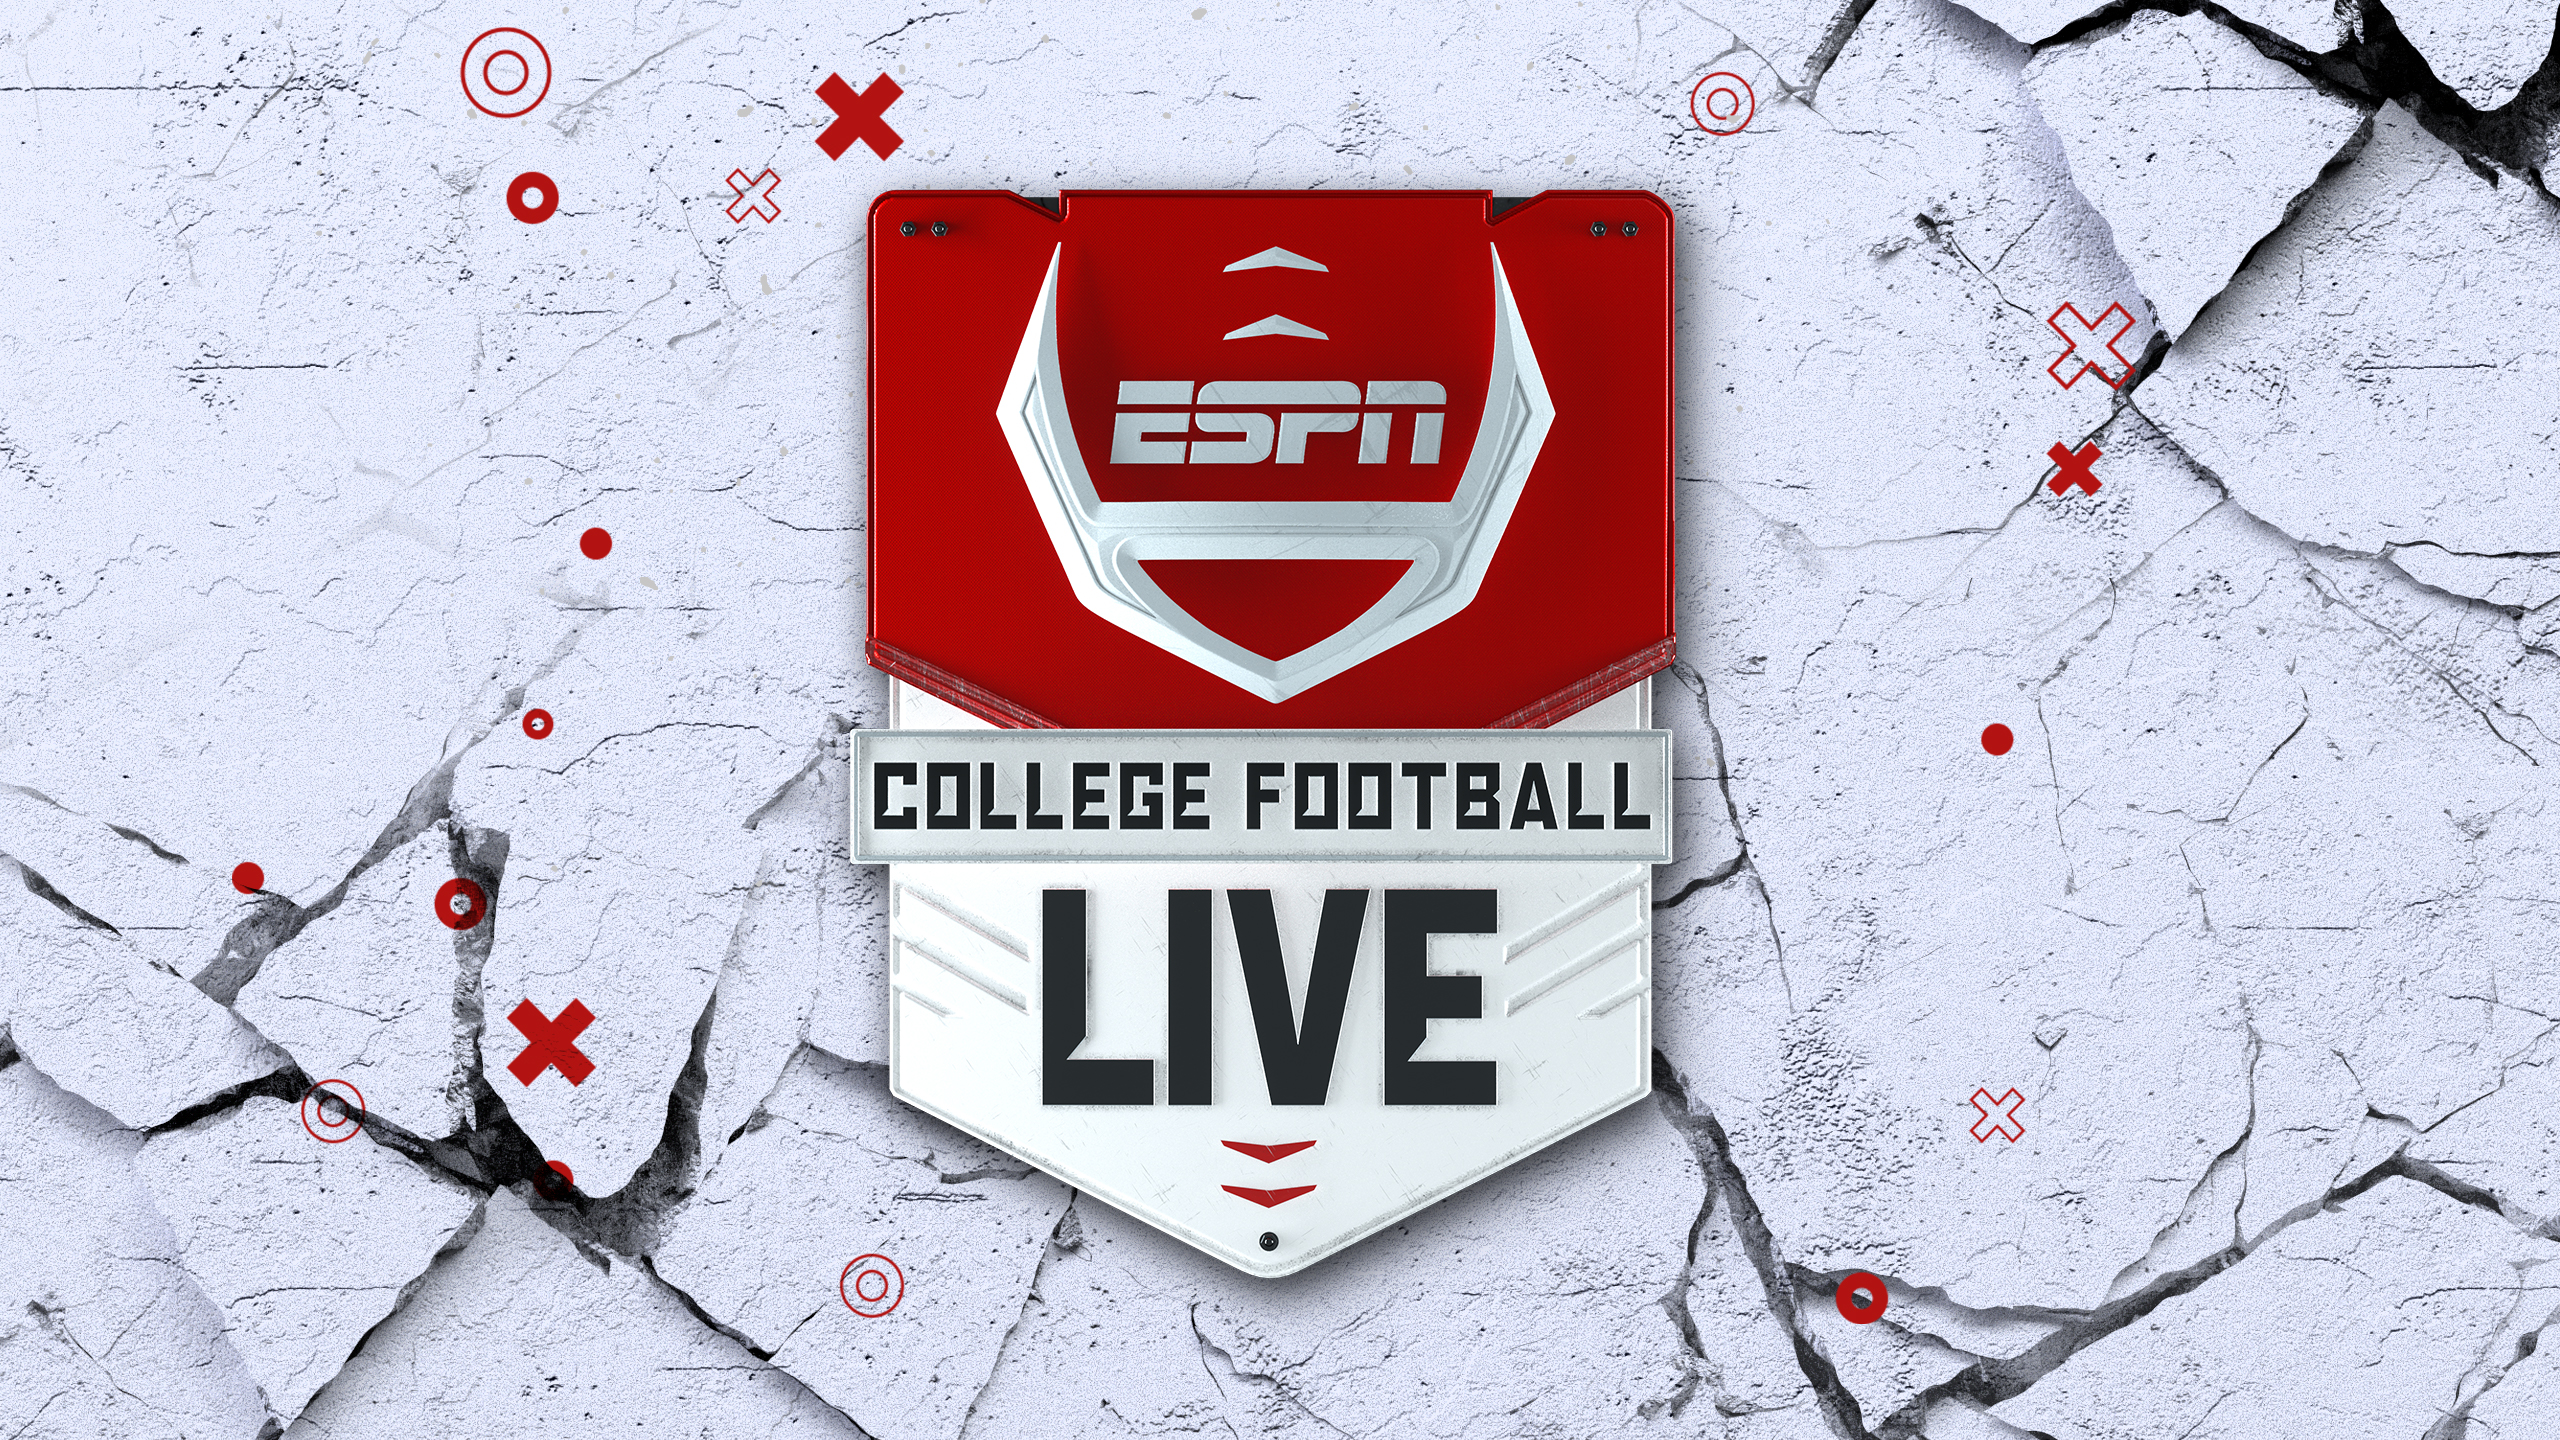 Tue, 11/13 - College Football Live